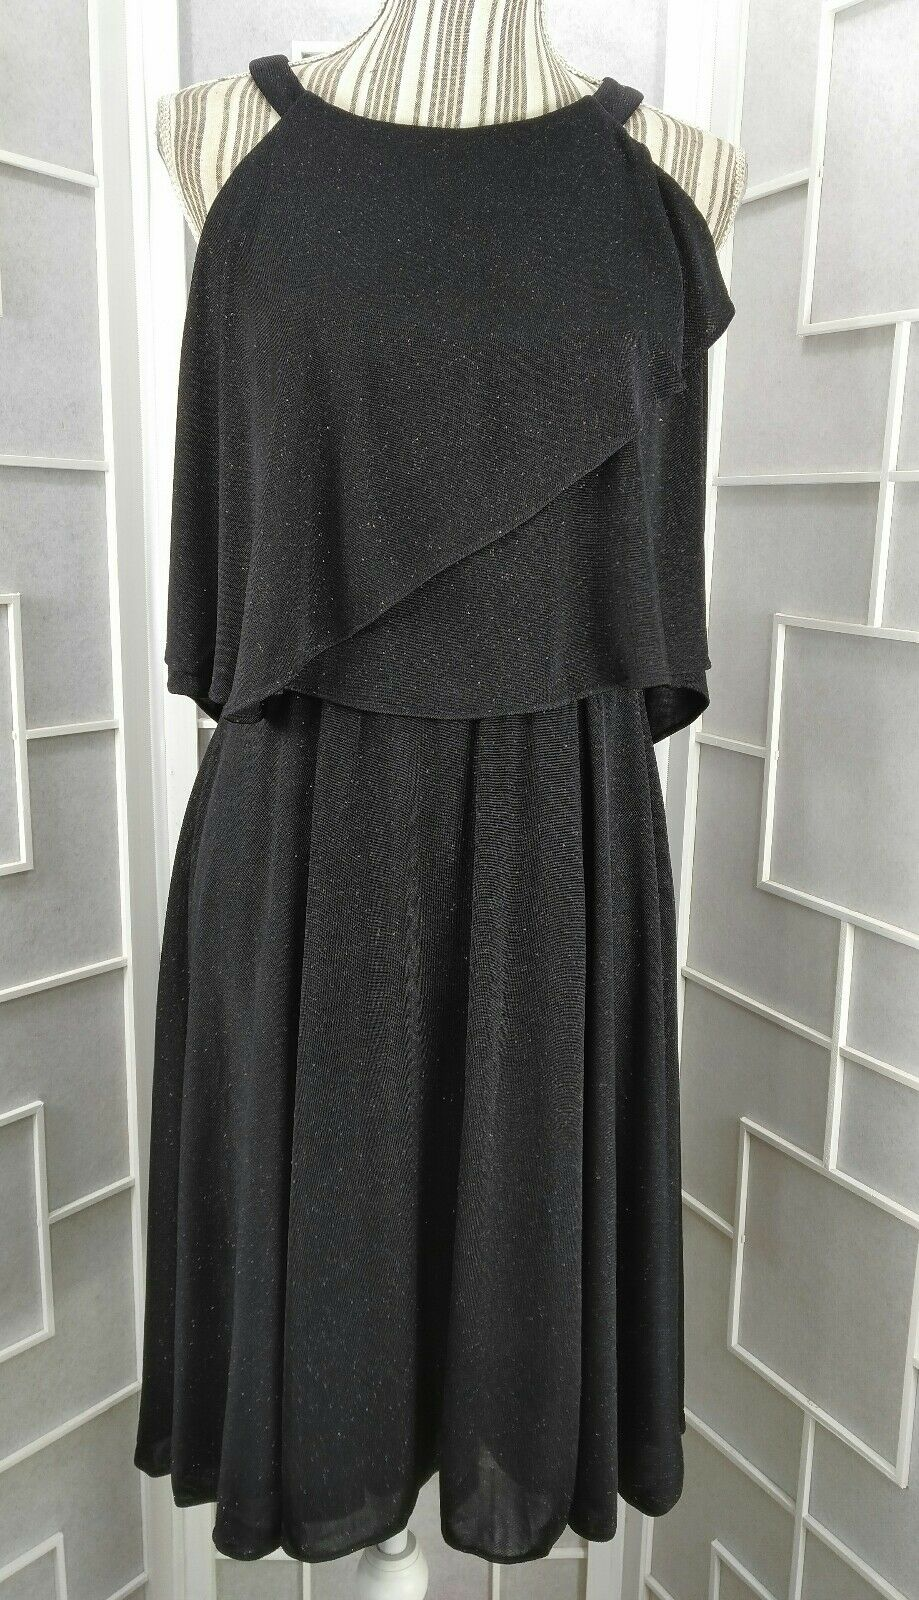 NWT Sz 10 MSK Circle Halter Tiered Bodice Sparkling Lined Knee Length Dress